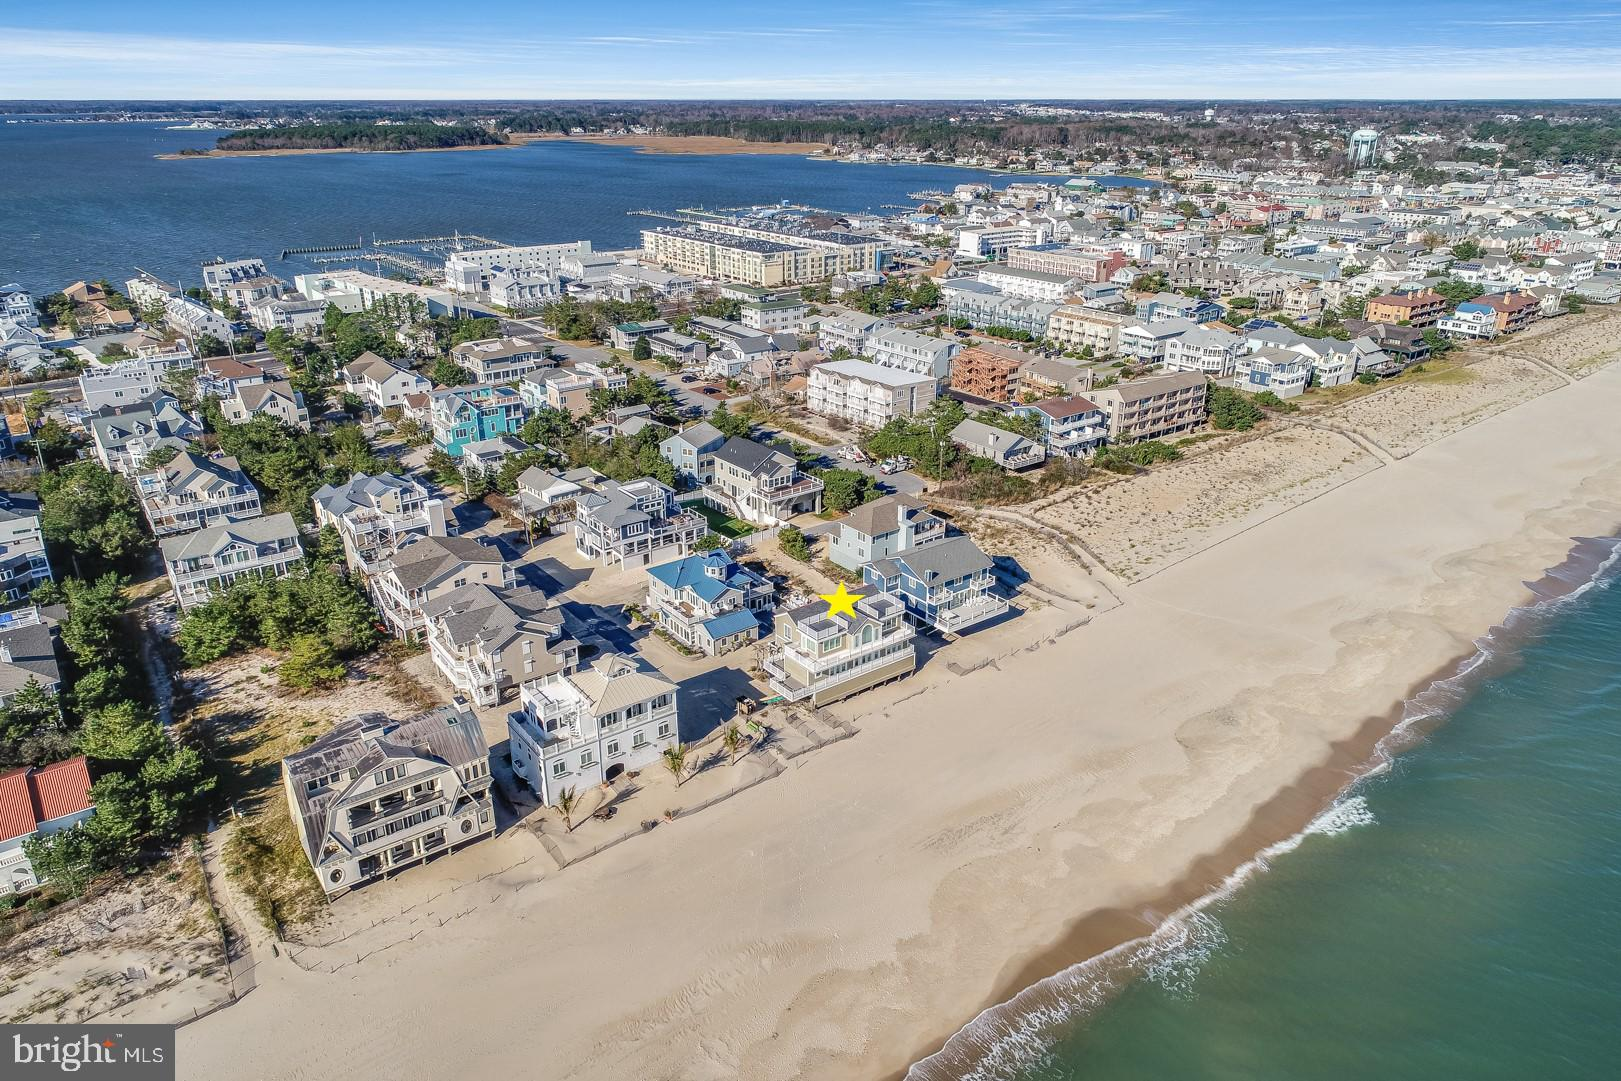 Now is your chance to own 1 Beach Avenue - One of the most highly coveted addresses along the East Coast. This oceanfront property is situated on one of Coastal Delaware's most unique lots. With no dunes to block its ocean views, you can walk directly out your front door and onto private North Indian Beach. Enjoy expansive vistas of the Atlantic from multiple outdoor decks, including two new rooftop decks. The inverted floor plan maximizes the panoramic beauty of these ocean views. The first level offers 5 bedrooms, 4 full bathrooms, and a large laundry room. Second-level highlights include a large kitchen, open living and dining areas, a powder room, and a sixth bedroom with a full bathroom. This bedroom could also be used as a second living area, den, or study. This home boasts a brand-new architectural shingle roof as well as new HardiePlank siding. Additionally, the eastern side of the home has new Pella 350 Series windows and doors with AZEK framing. Store your boat across the street from your home at the Rehoboth Bay Marina. North Indian Beach is a small, unique community with a private, guarded beach and private security. Located on the southern end of Dewey Beach, it also offers an easy walk to a variety of resort-style amenities. Easily stroll into town for a night at the Starboard or Rusty Rudder; or, ride your bike or take the trolley into downtown Rehoboth Beach. Flood insurance is currently under $5K per year and is transferrable. This home is priced competitively. Call for your own private tour today!